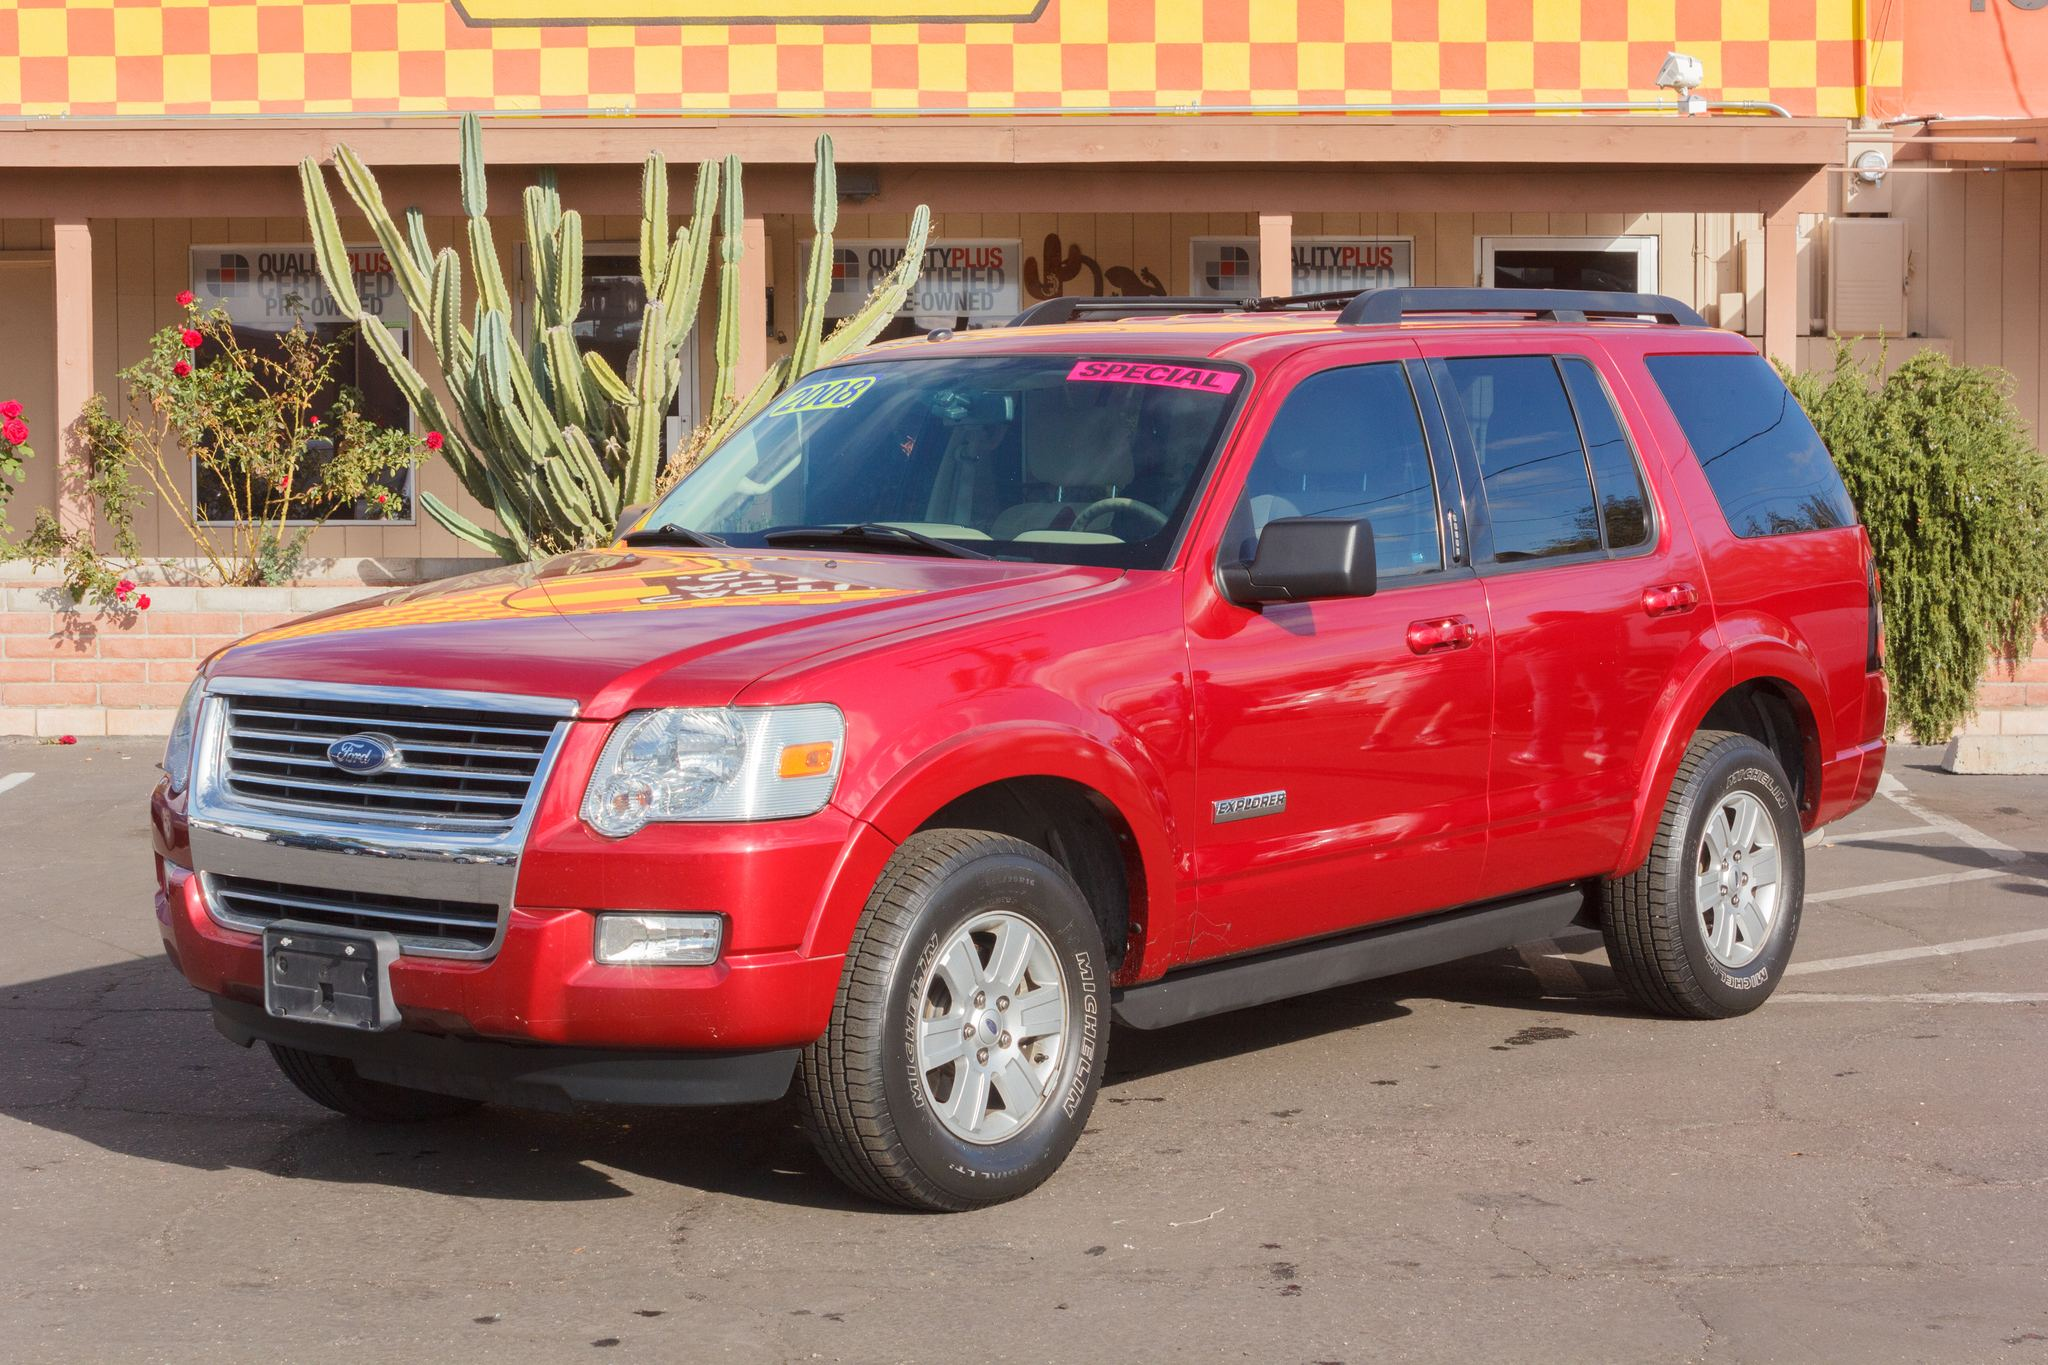 Photo of 2008 Ford Explorer 2WD 4d Wagon XLT V6 Colorado Red Clearcoat